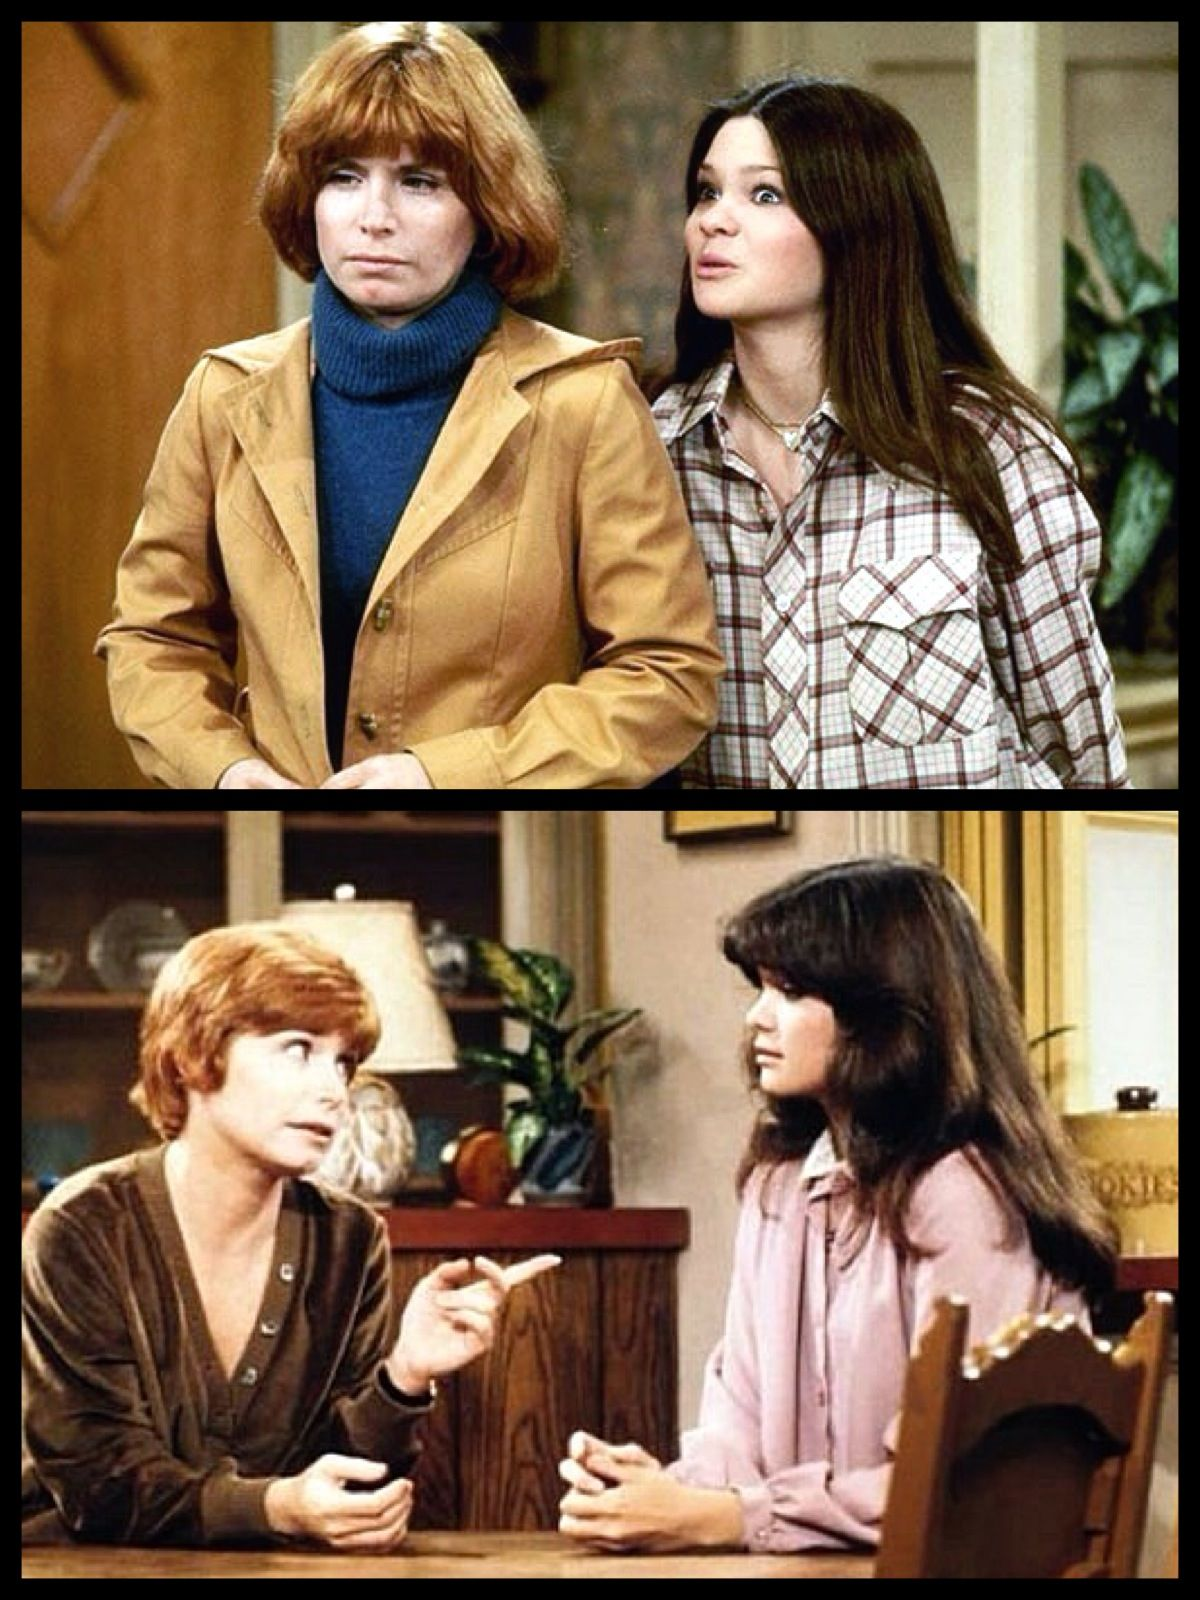 One Day At A Time 1975 1984 Starring Bonnie Franklin As Ann Romano A Divorced Mother Who Moves To Marion C Divorced Mother Valerie Bertinelli 70s Tv Shows